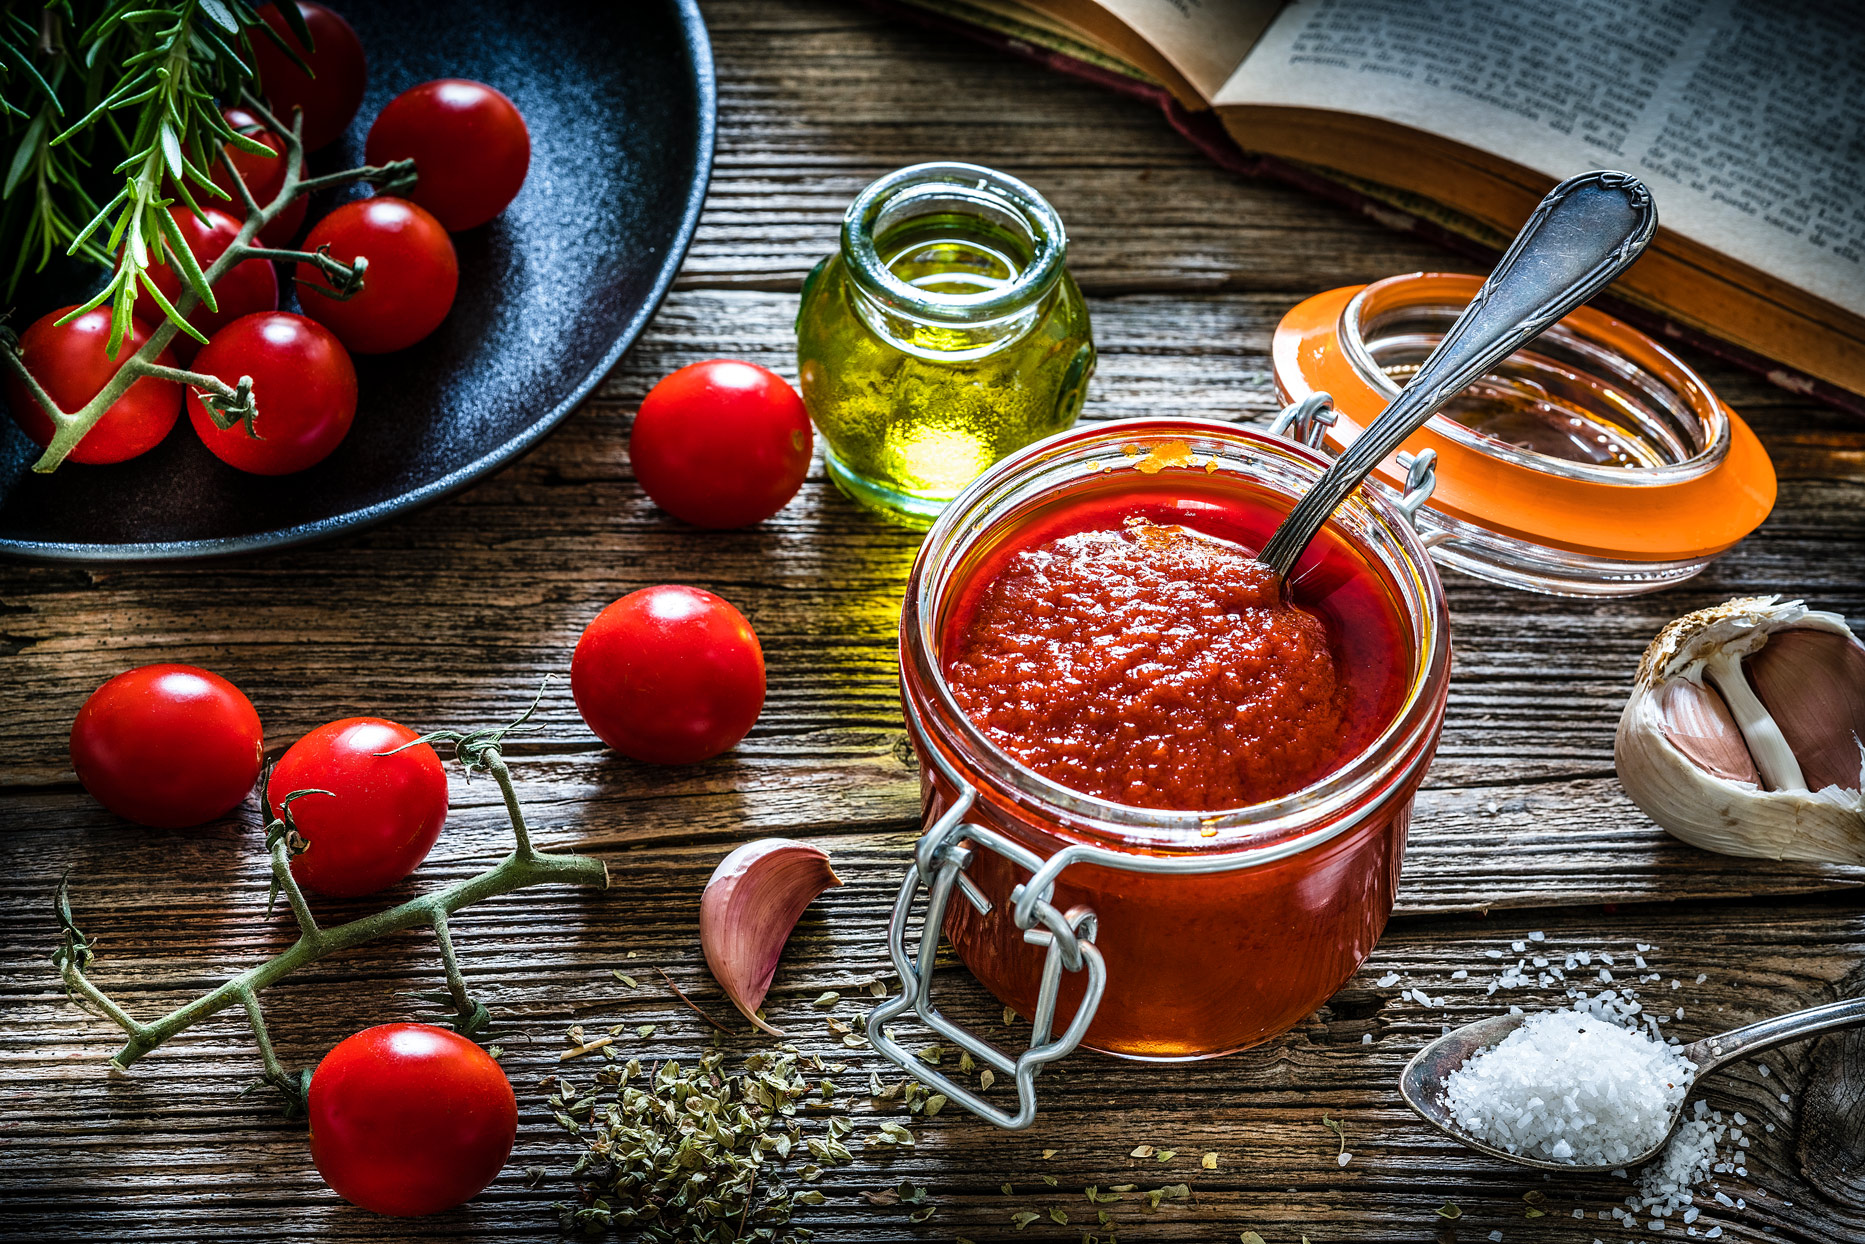 homemade tomato sauce in a glass jar